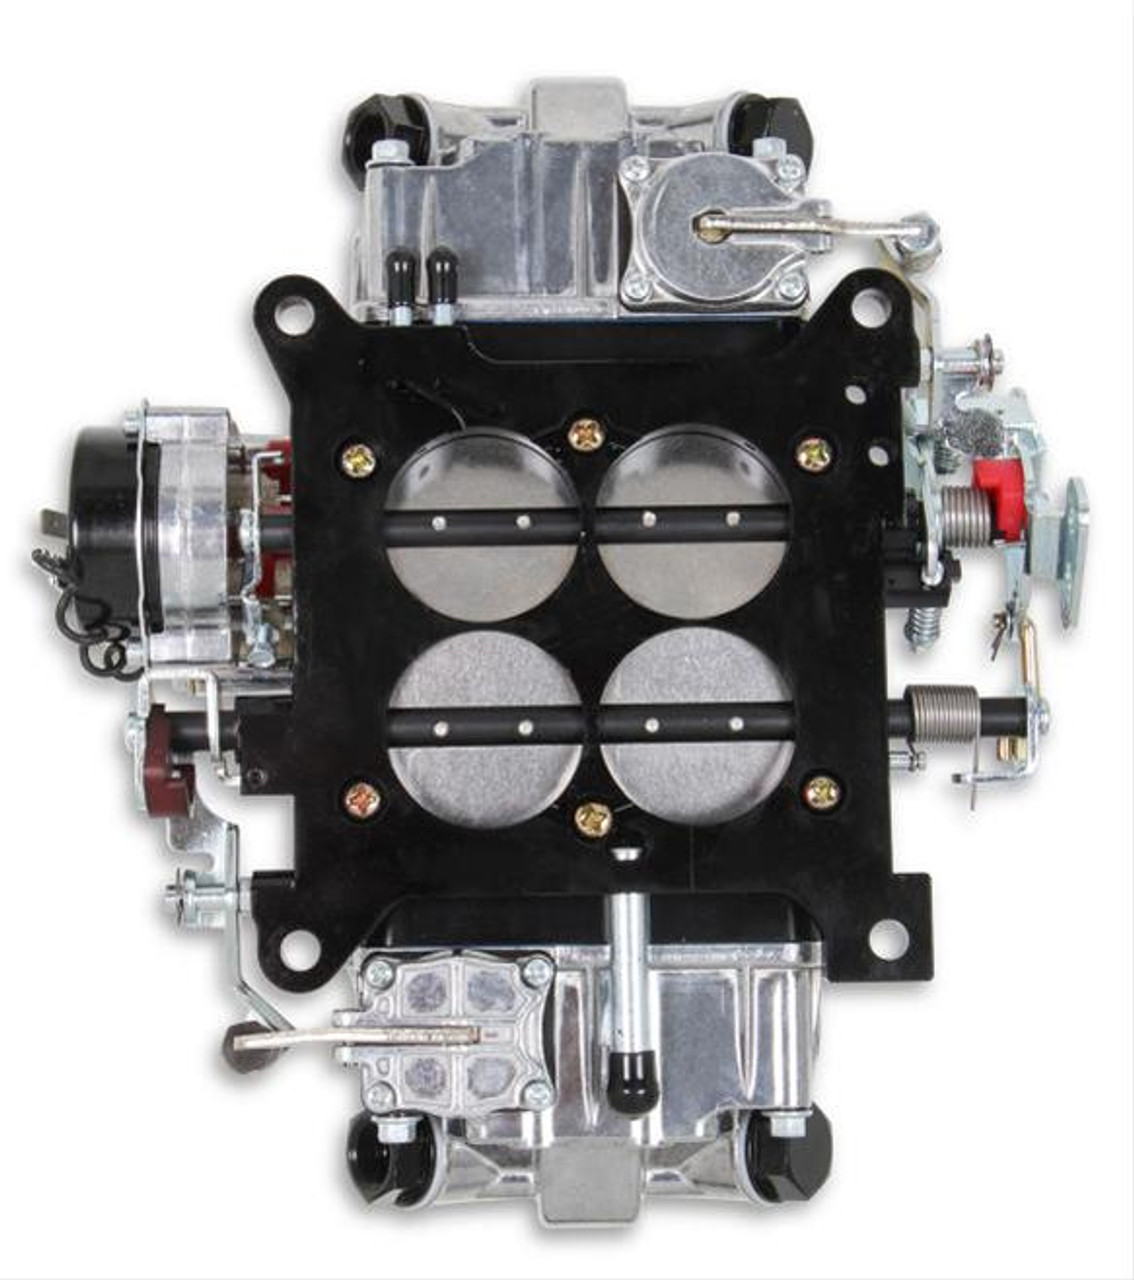 Quick Fuel Brawler Street Series 850 Carburetor BR-67214 with FREE SHIPPING and INSTANT REBATE SAVINGS